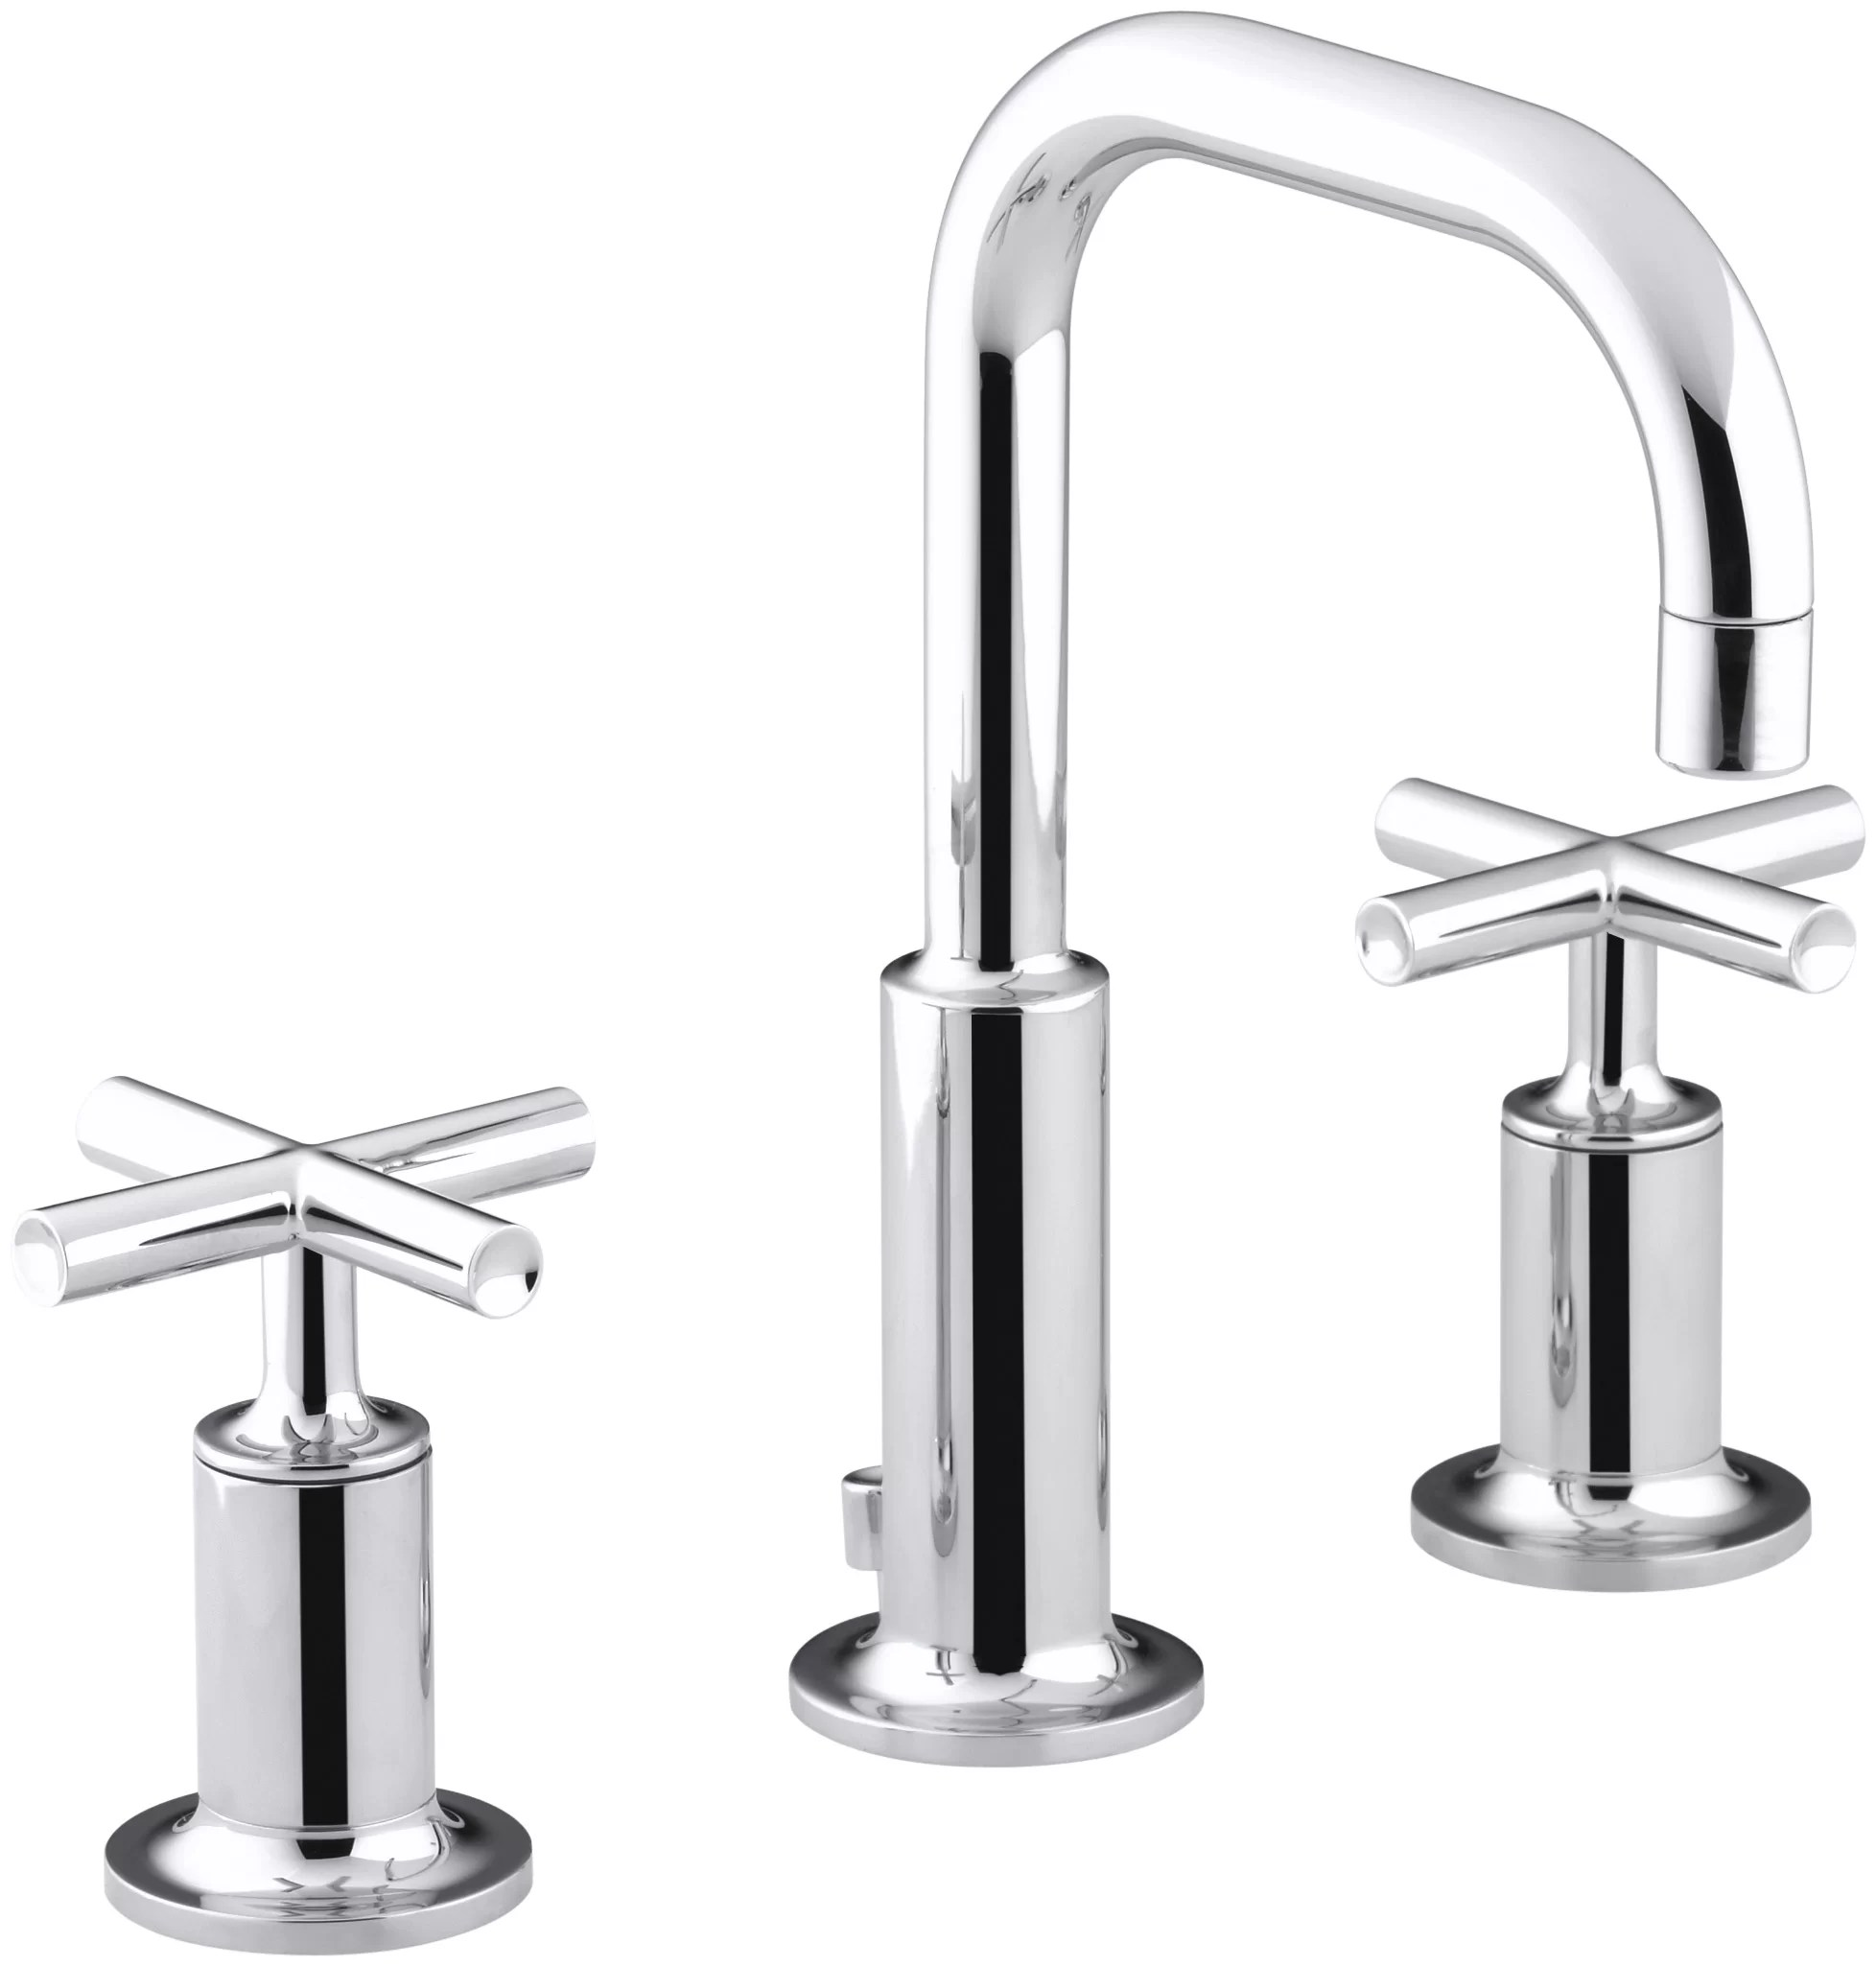 purist widespread bathroom faucet with drain assembly